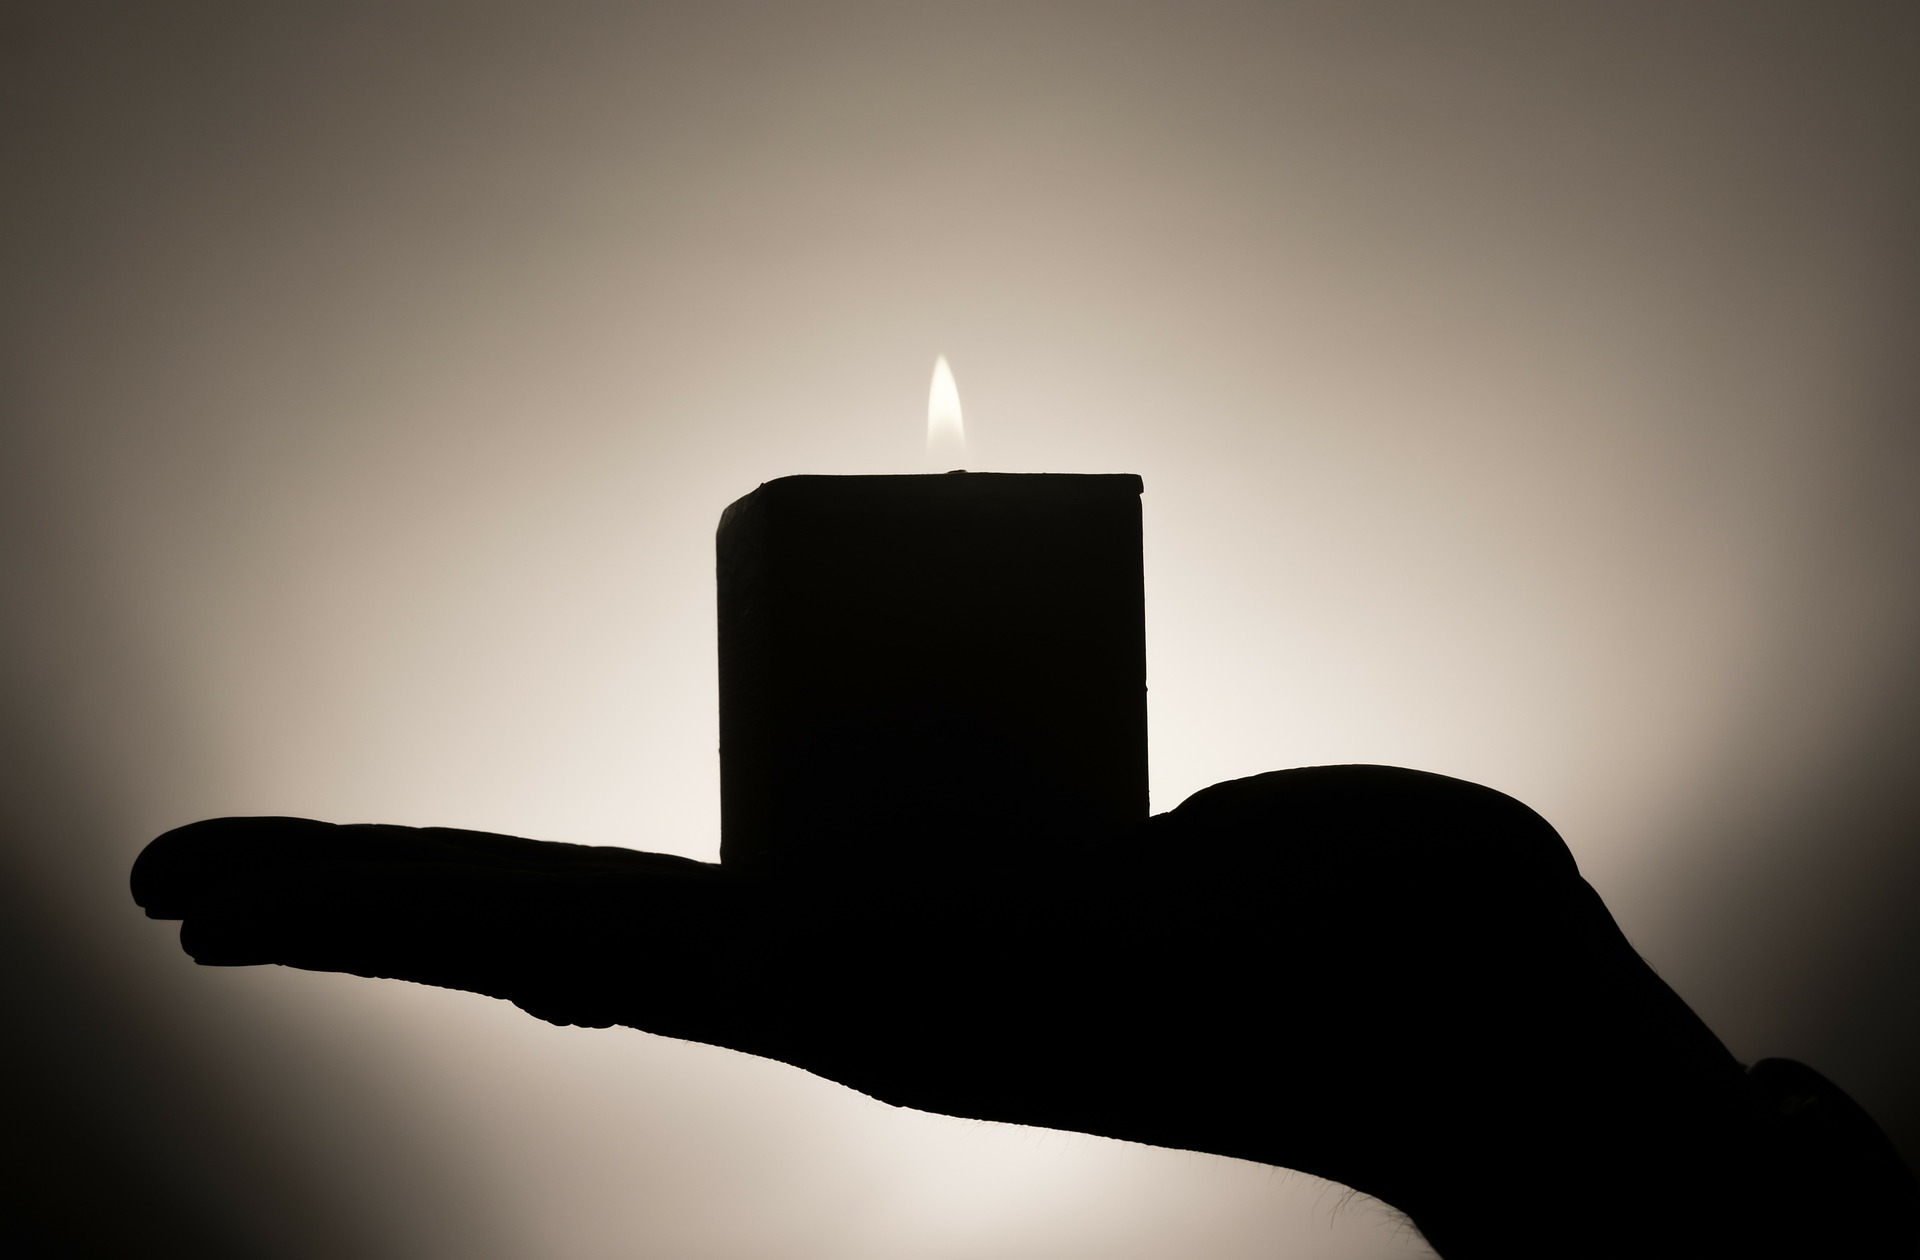 Silhouette of hand holding lit candle